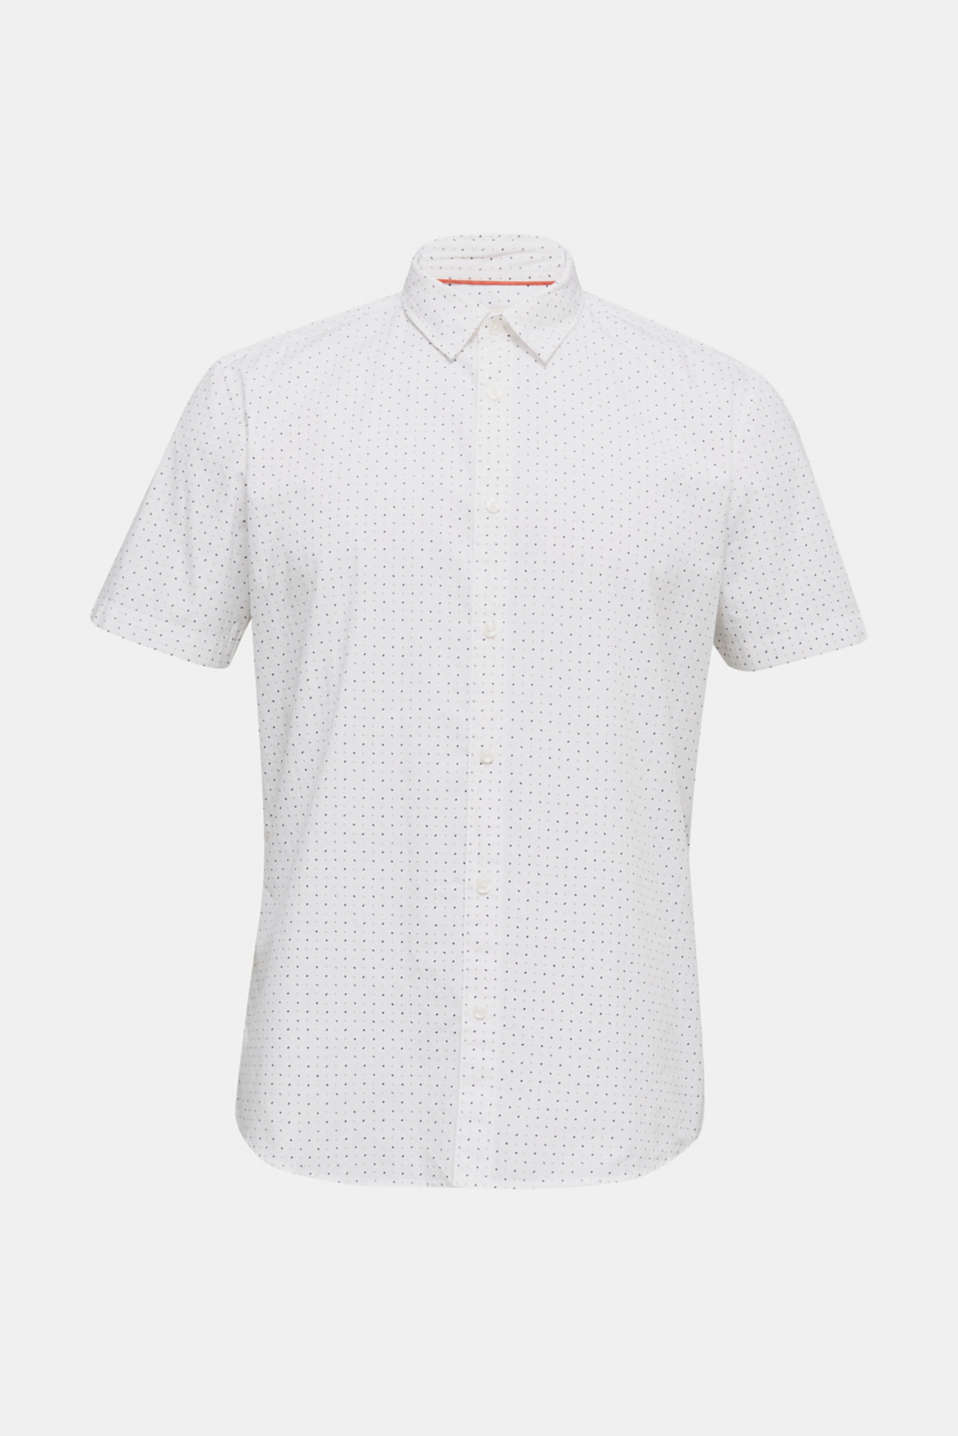 Shirt with micro print, 100% organic cotton, WHITE 4, detail image number 6